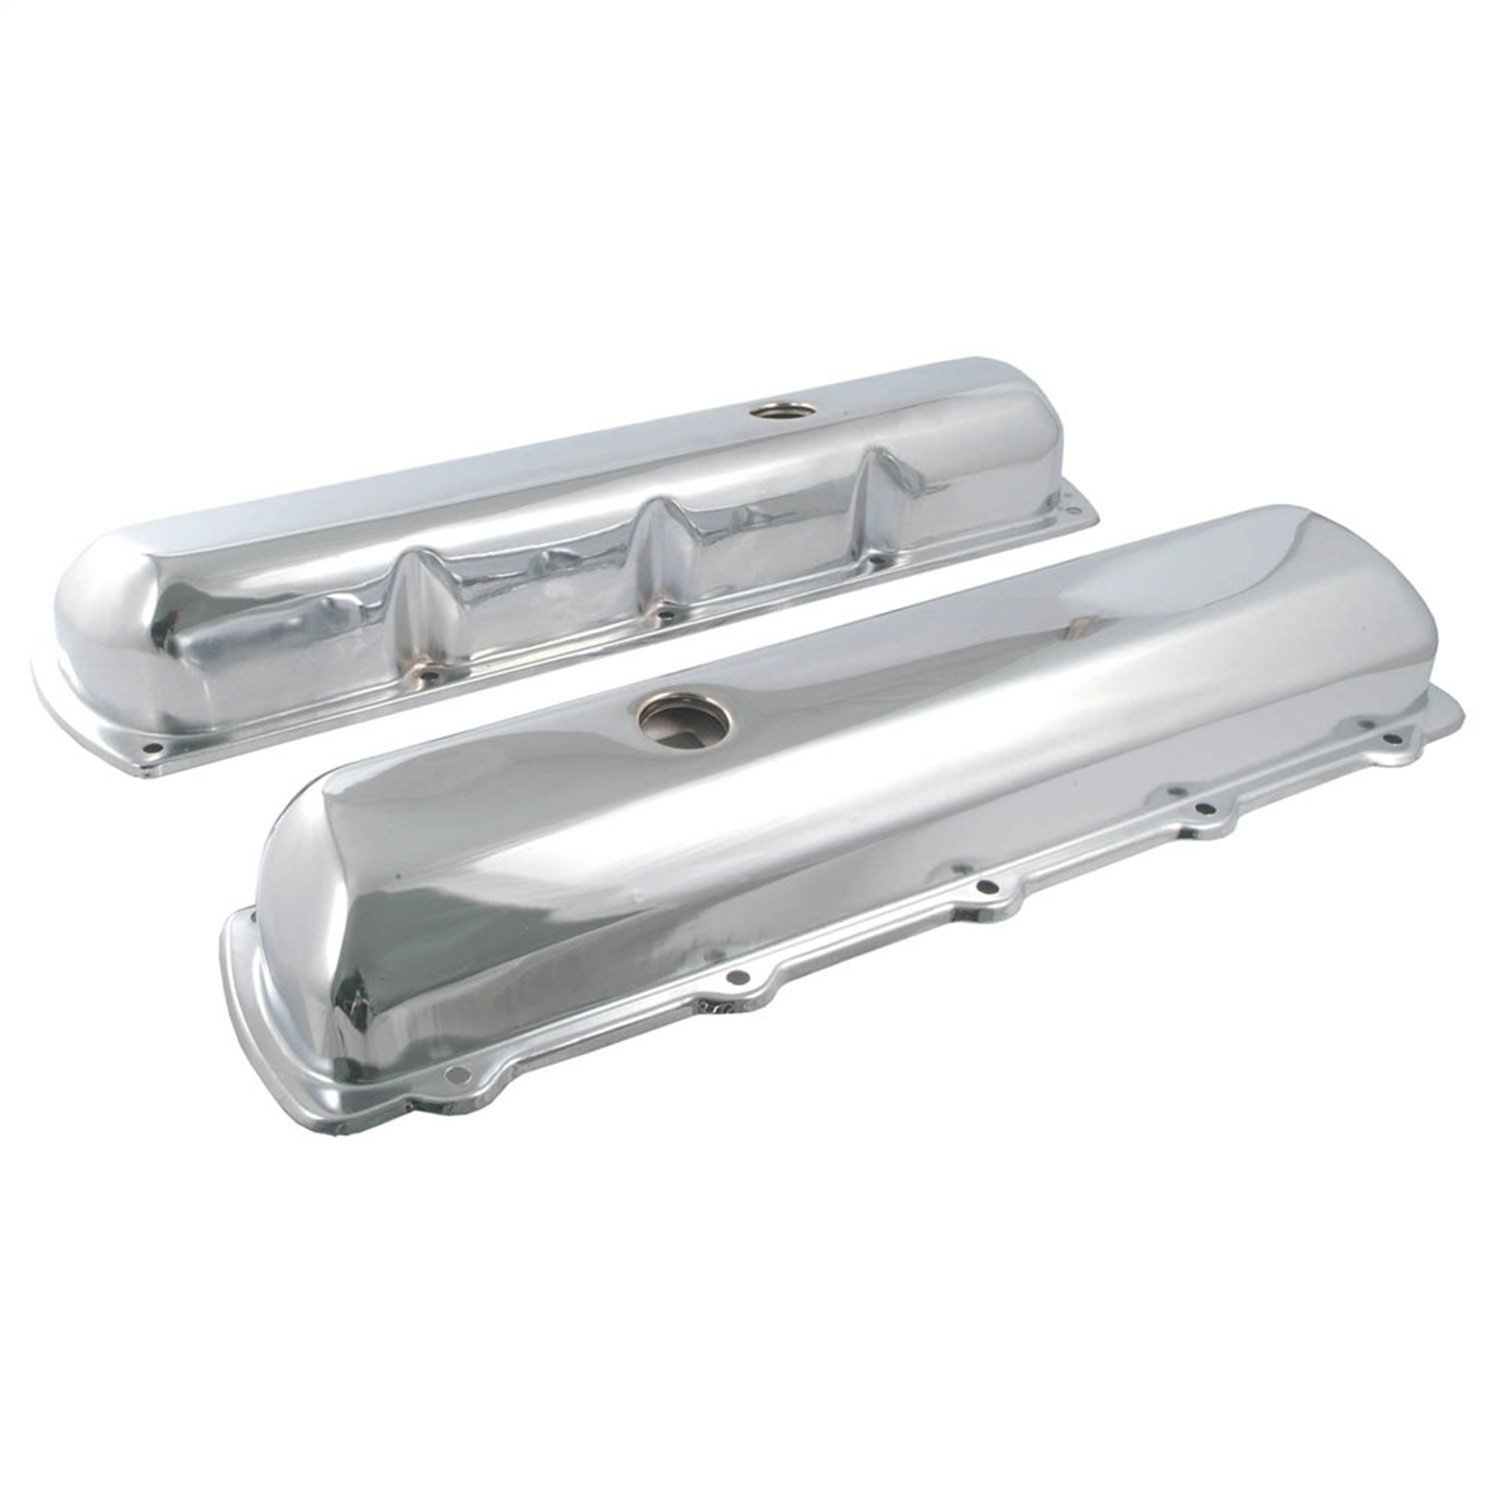 Spectre Performance 5278 Valve Cover for Oldsmobile by Spectre Performance